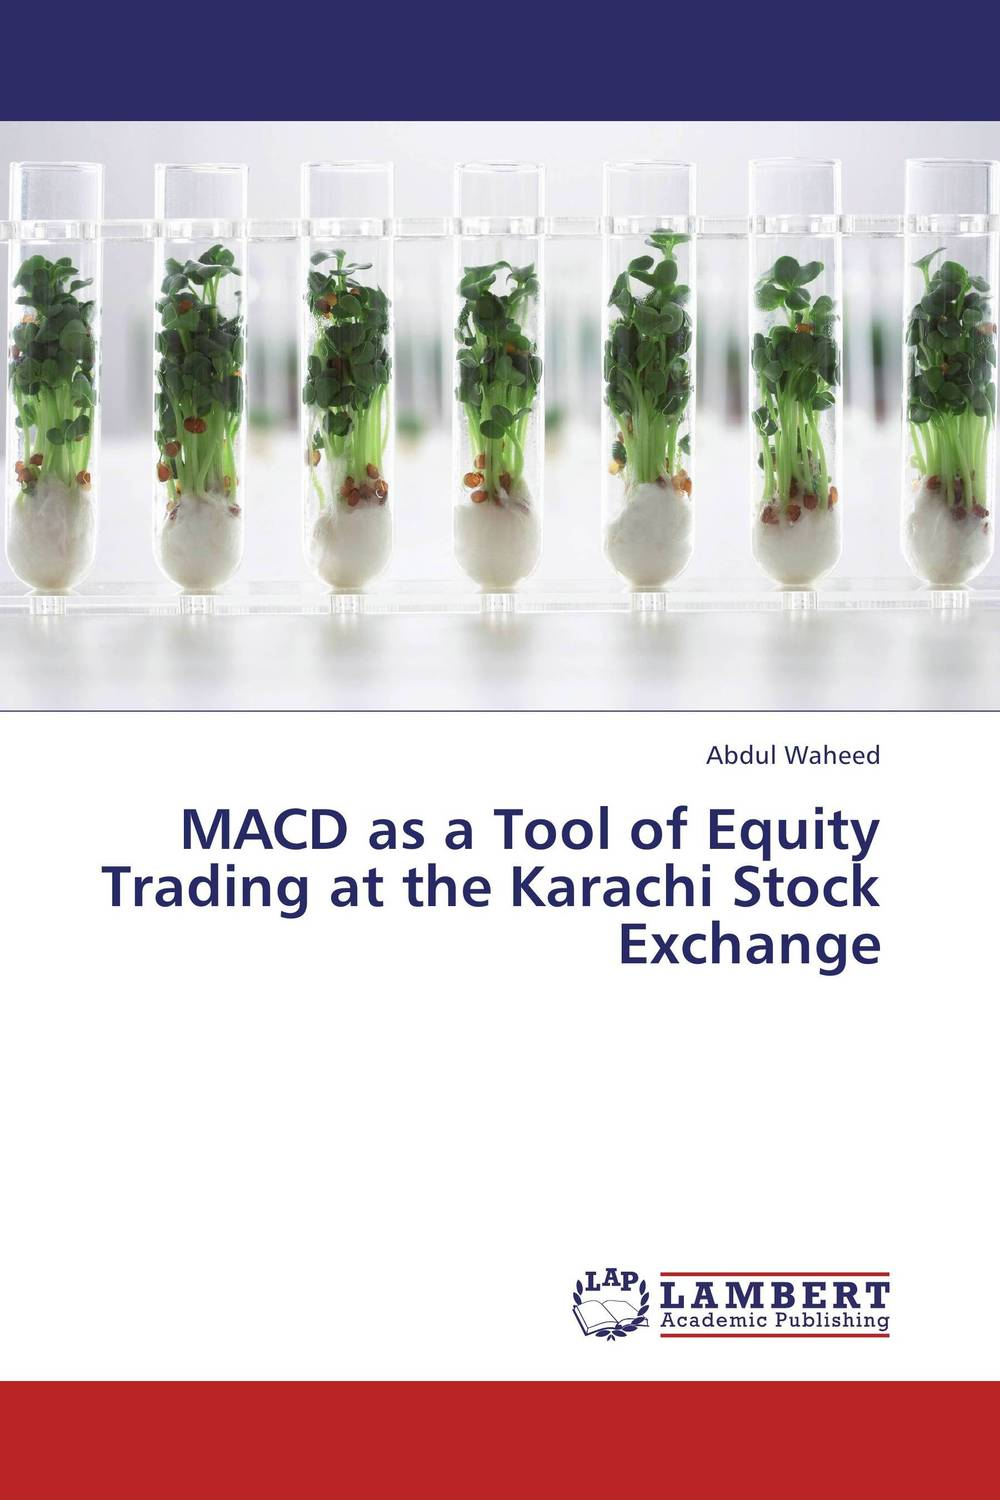 MACD as a Tool of Equity Trading at the Karachi Stock Exchange